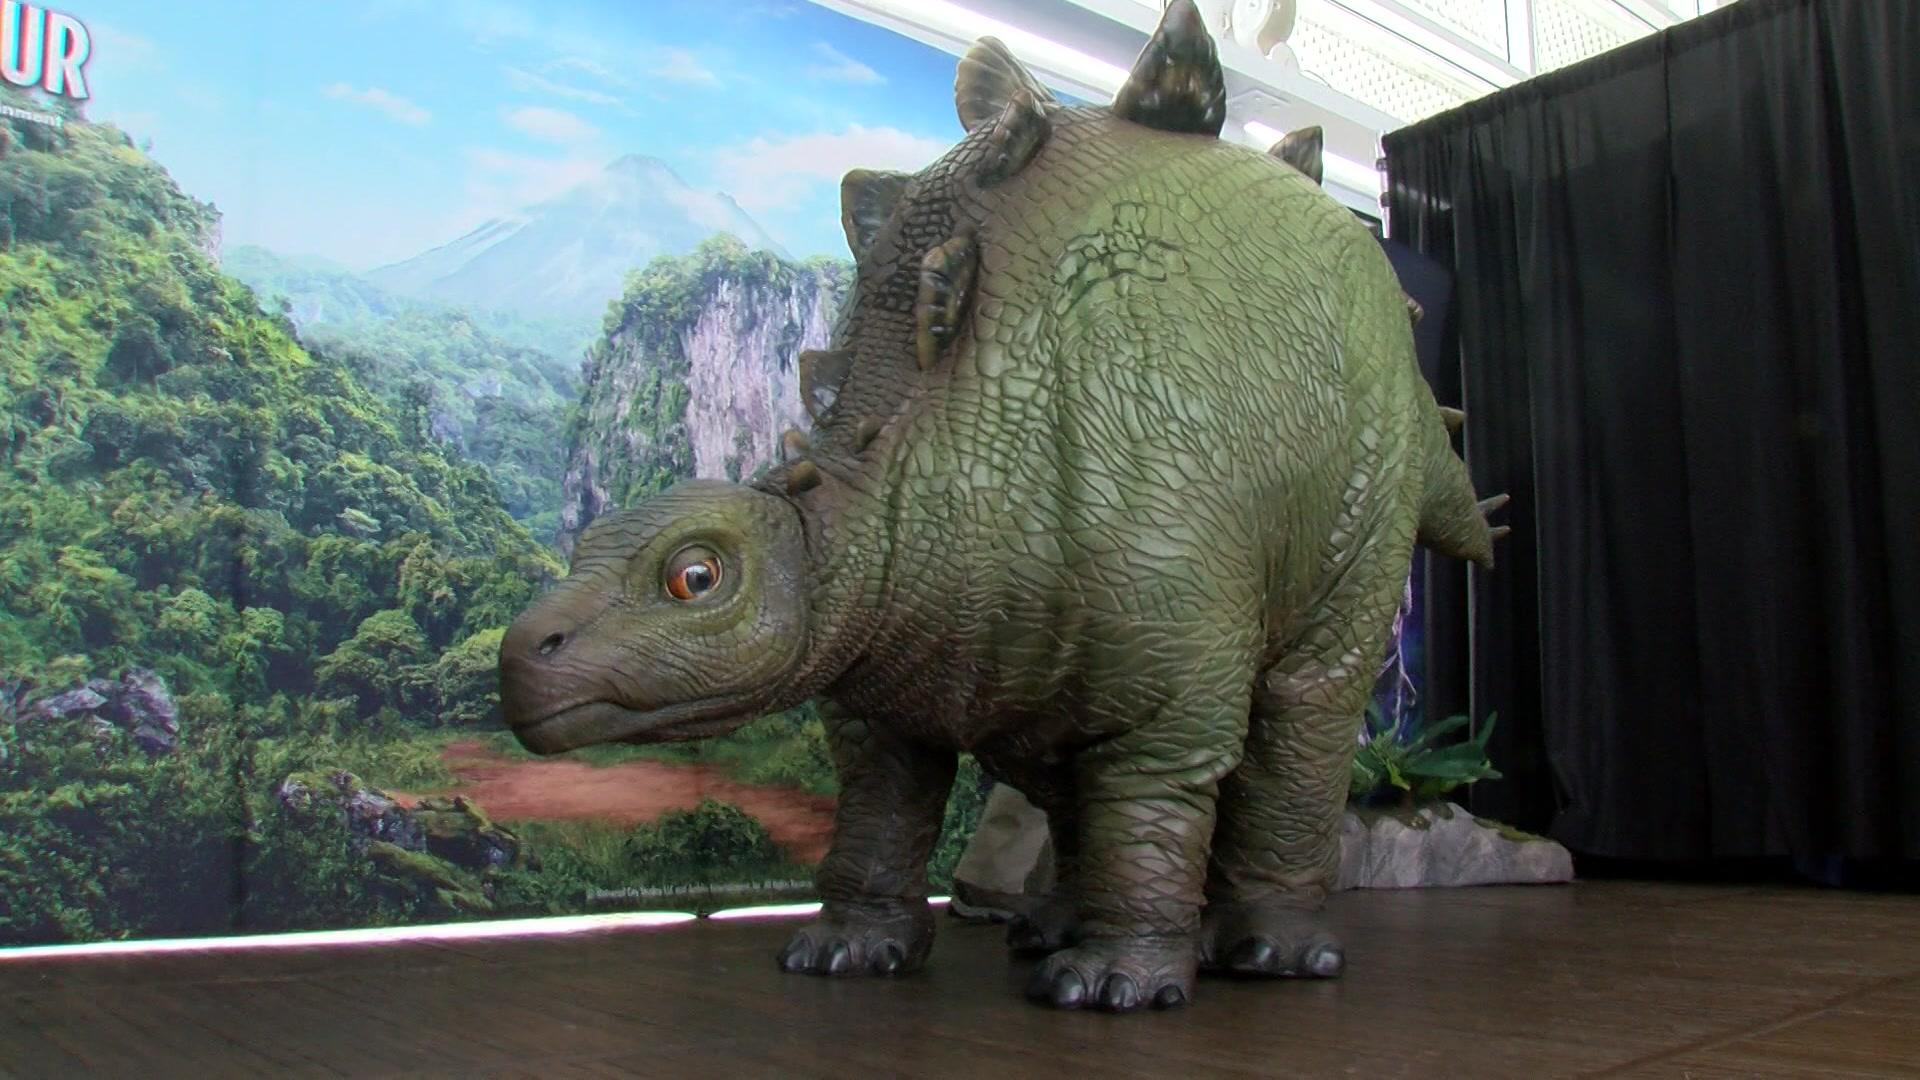 Kids partake in Jurassic World Live Tour-themed STEM activities with animatronic dinosaur